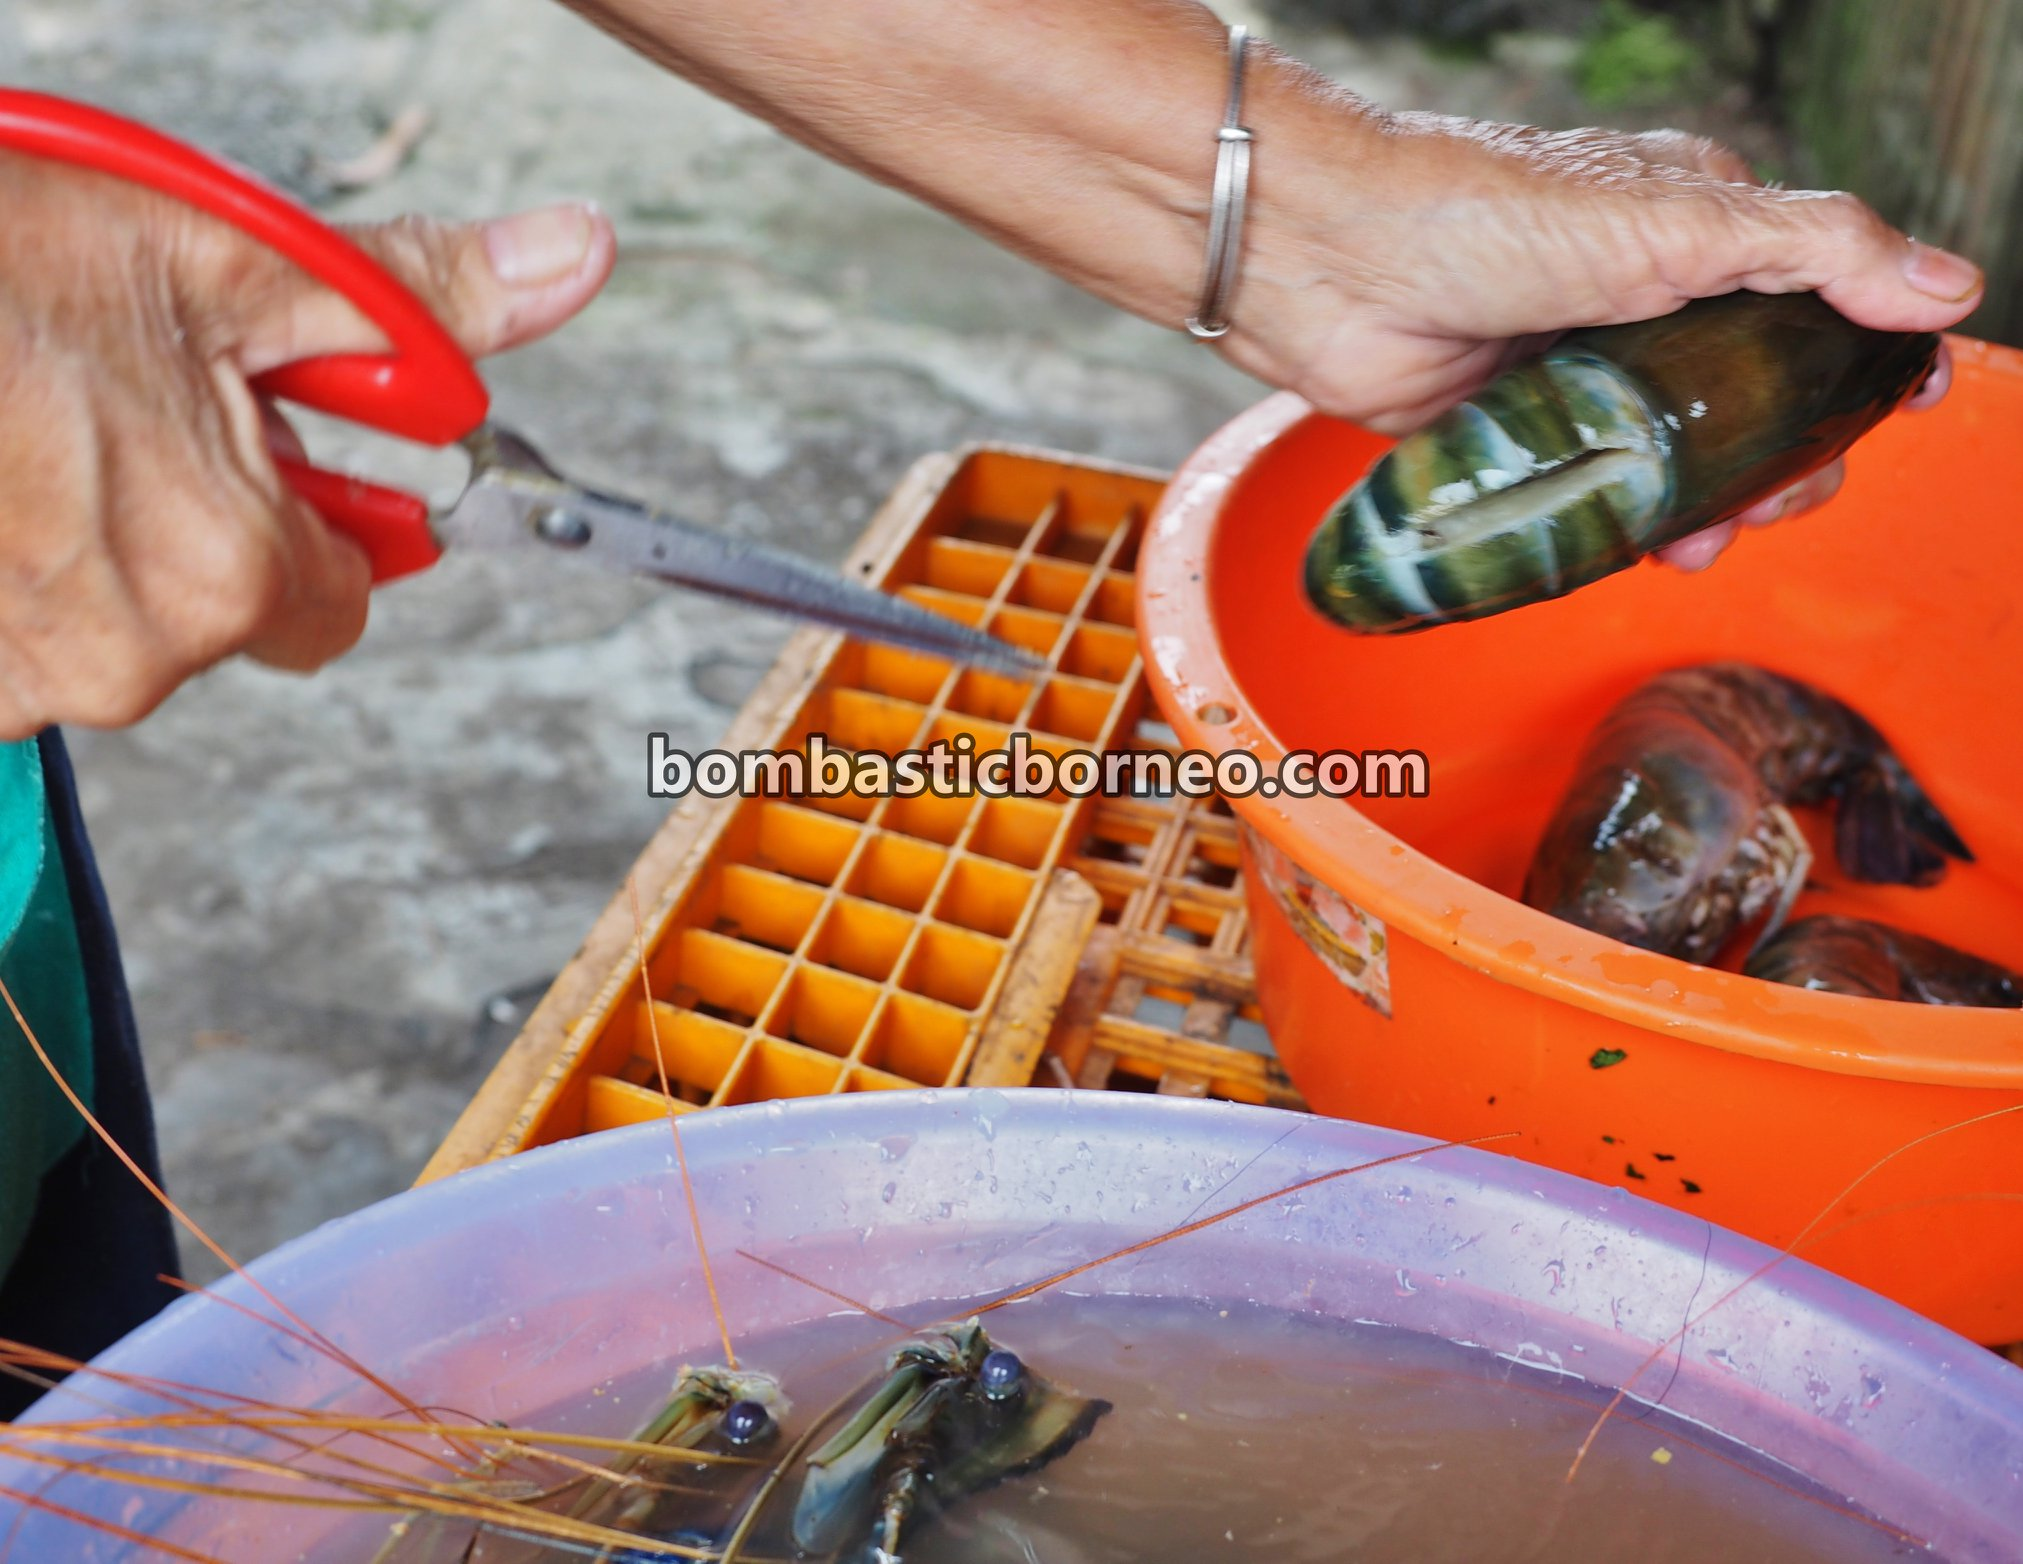 udang galah, freshwater prawn, Giant Prawn, backpackers, destination, Jit Hin, Malaysia, Sarawak, Borneo, Tourism, travel guide, village, 马来西亚砂拉越, 西连甘榜达迈, 蓝脚淡水虾